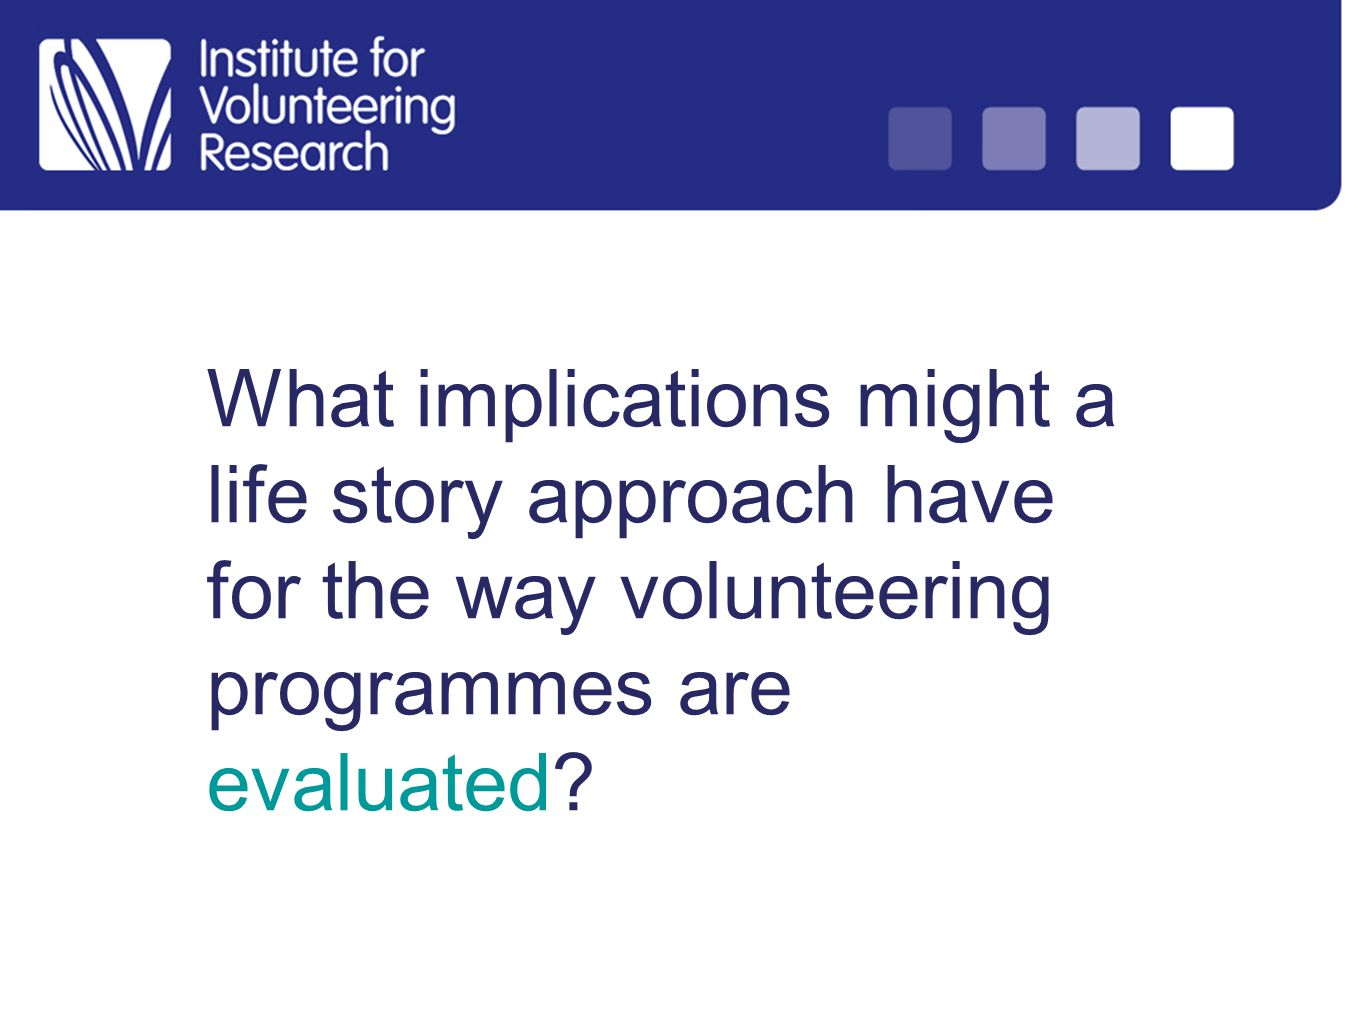 What implications might a life story approach have for the way volunteering programmes are evaluated